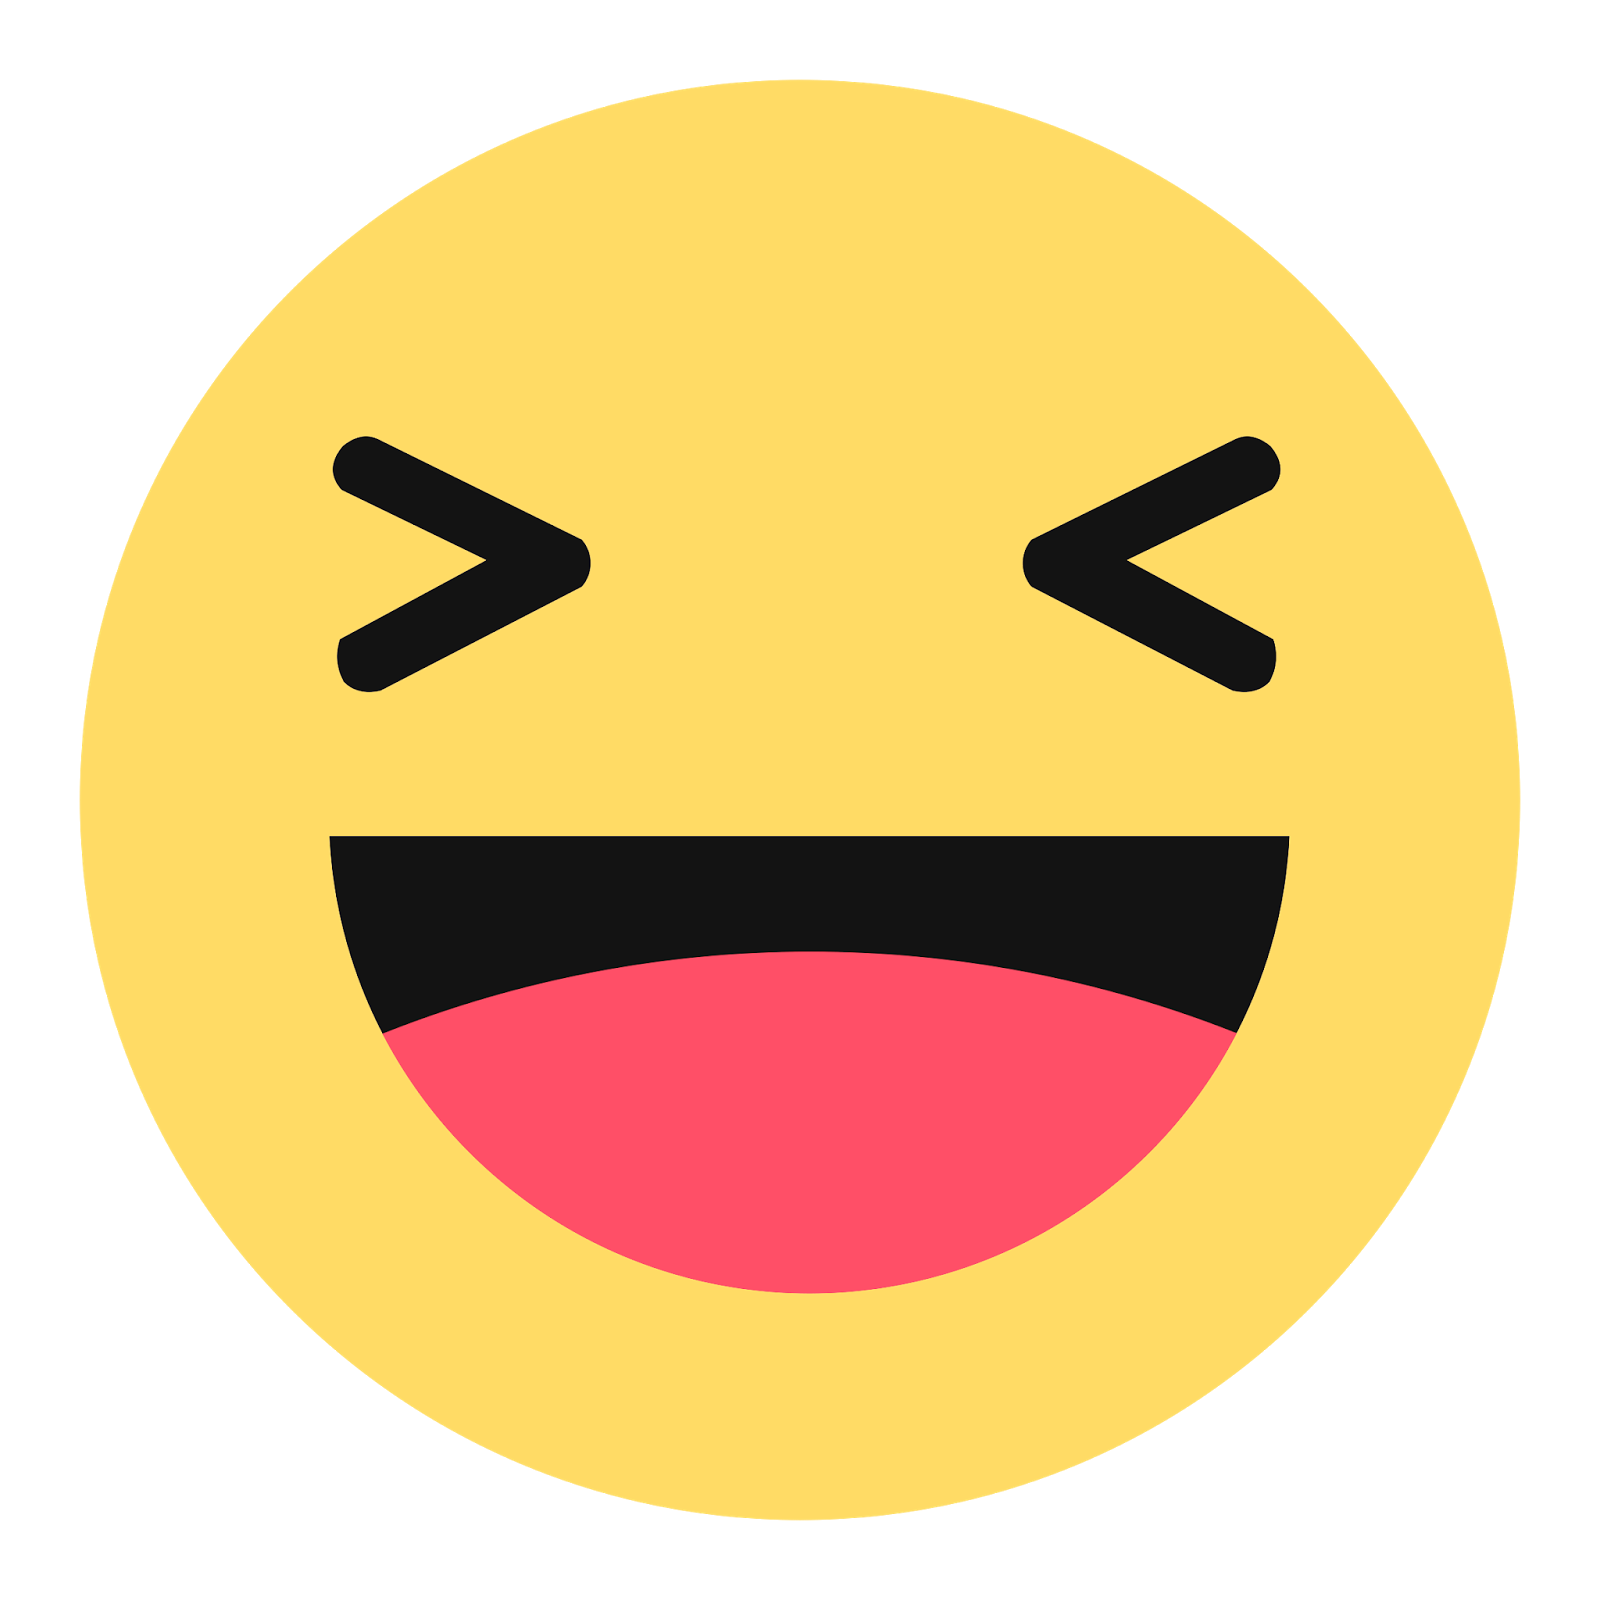 Emoticon Button Facebook Like Download Free Image PNG Image